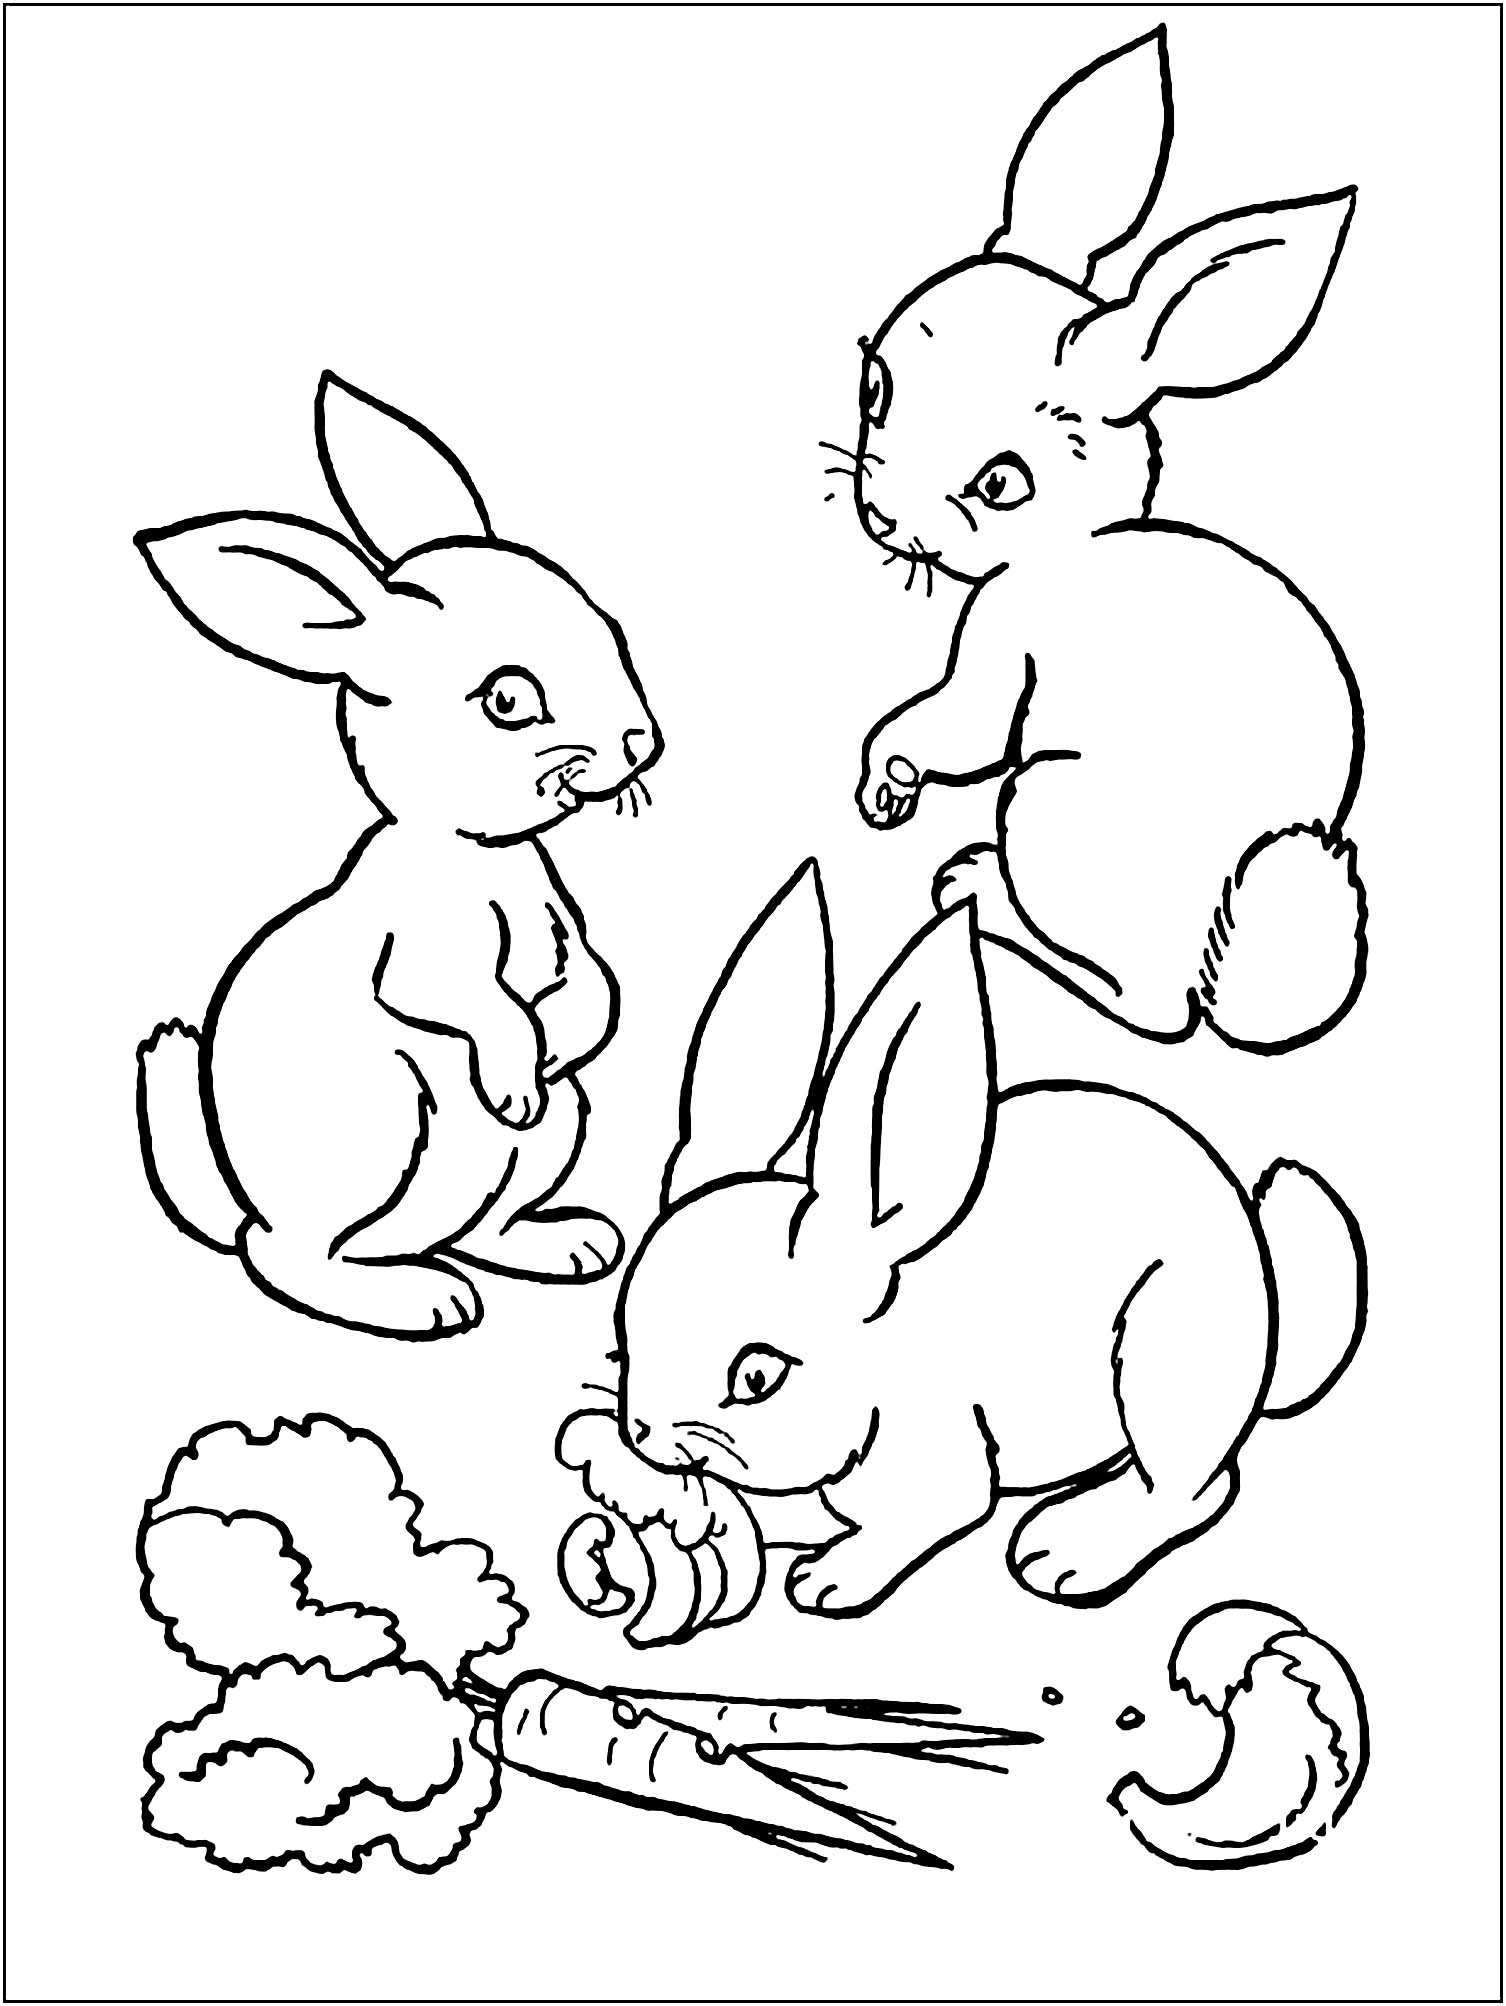 bunny picture to color rabbit to download rabbit kids coloring pages color to bunny picture